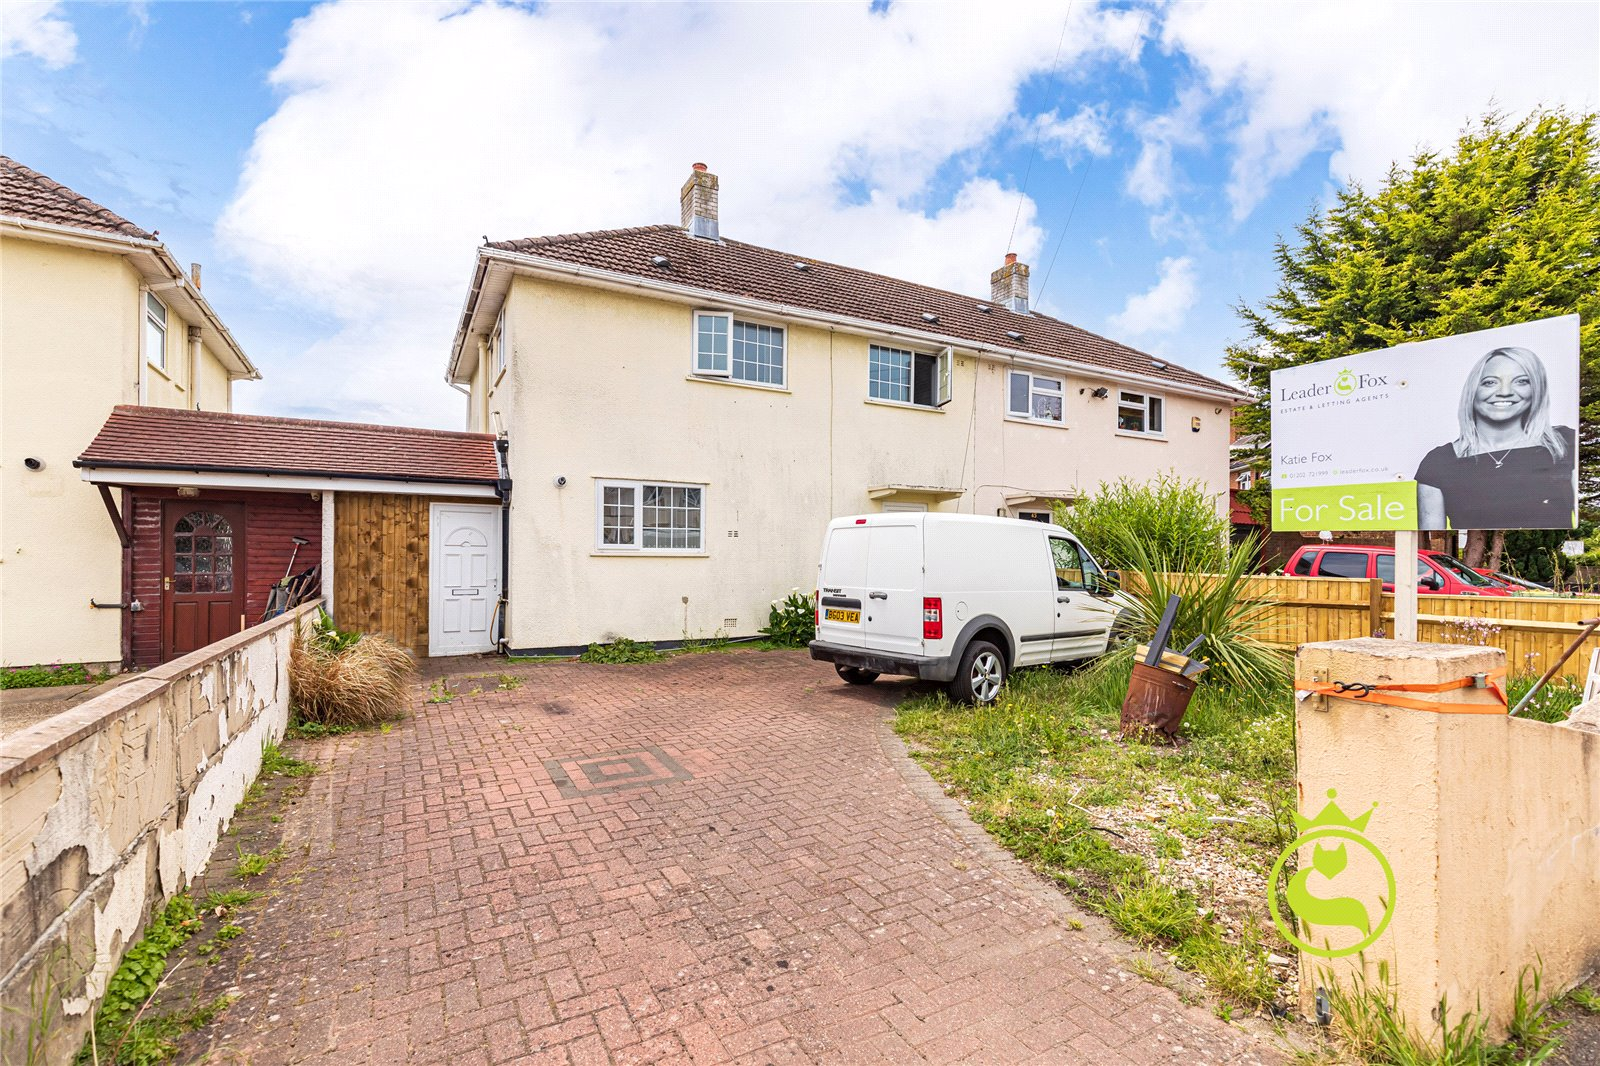 3 bed house for sale in Raleigh Road, Wallisdown - Property Image 1